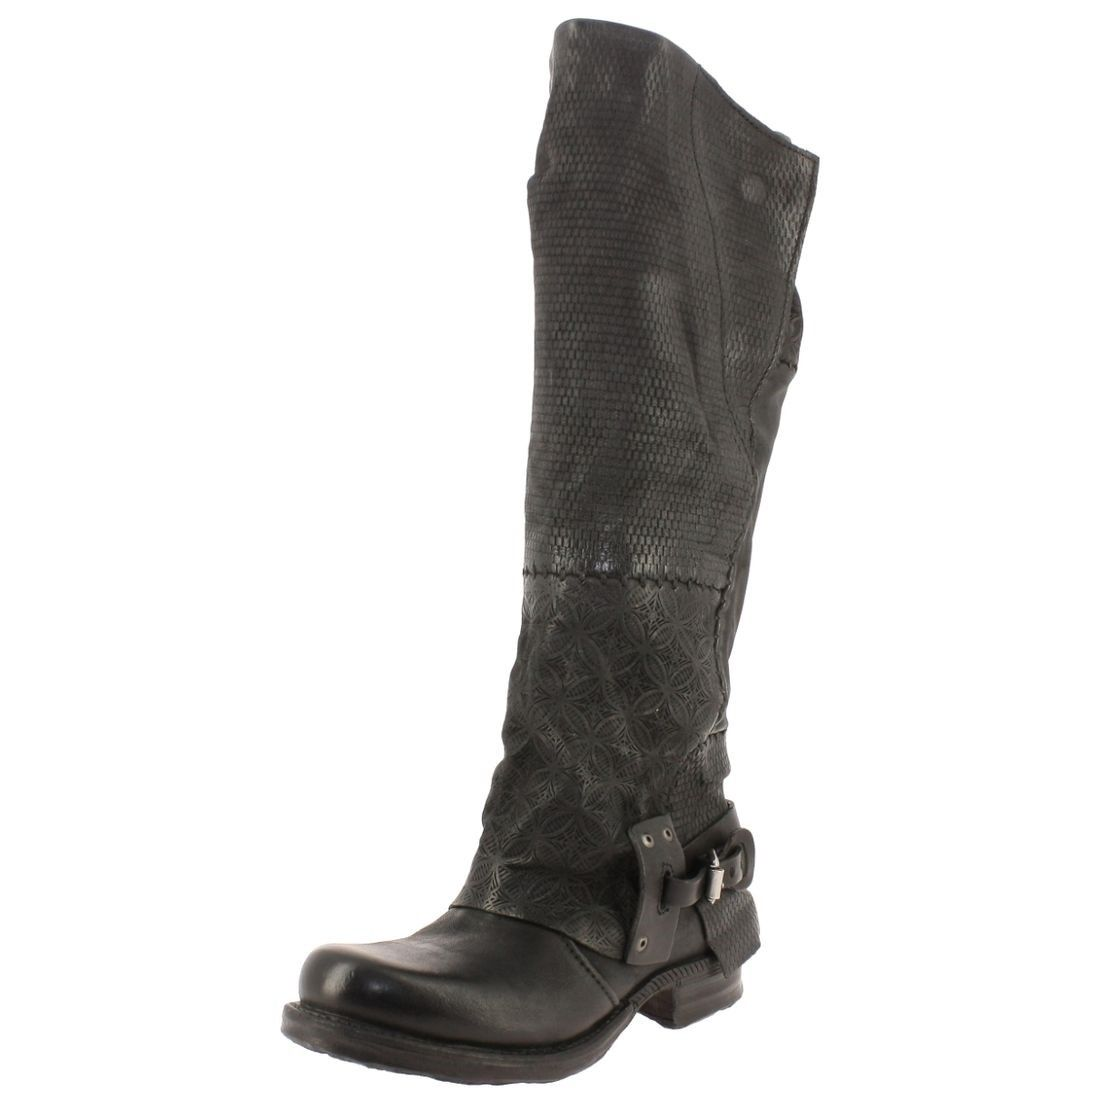 Boots 520342 As98Shoes Airstep Femme ShoesBootsBlack nw0POk